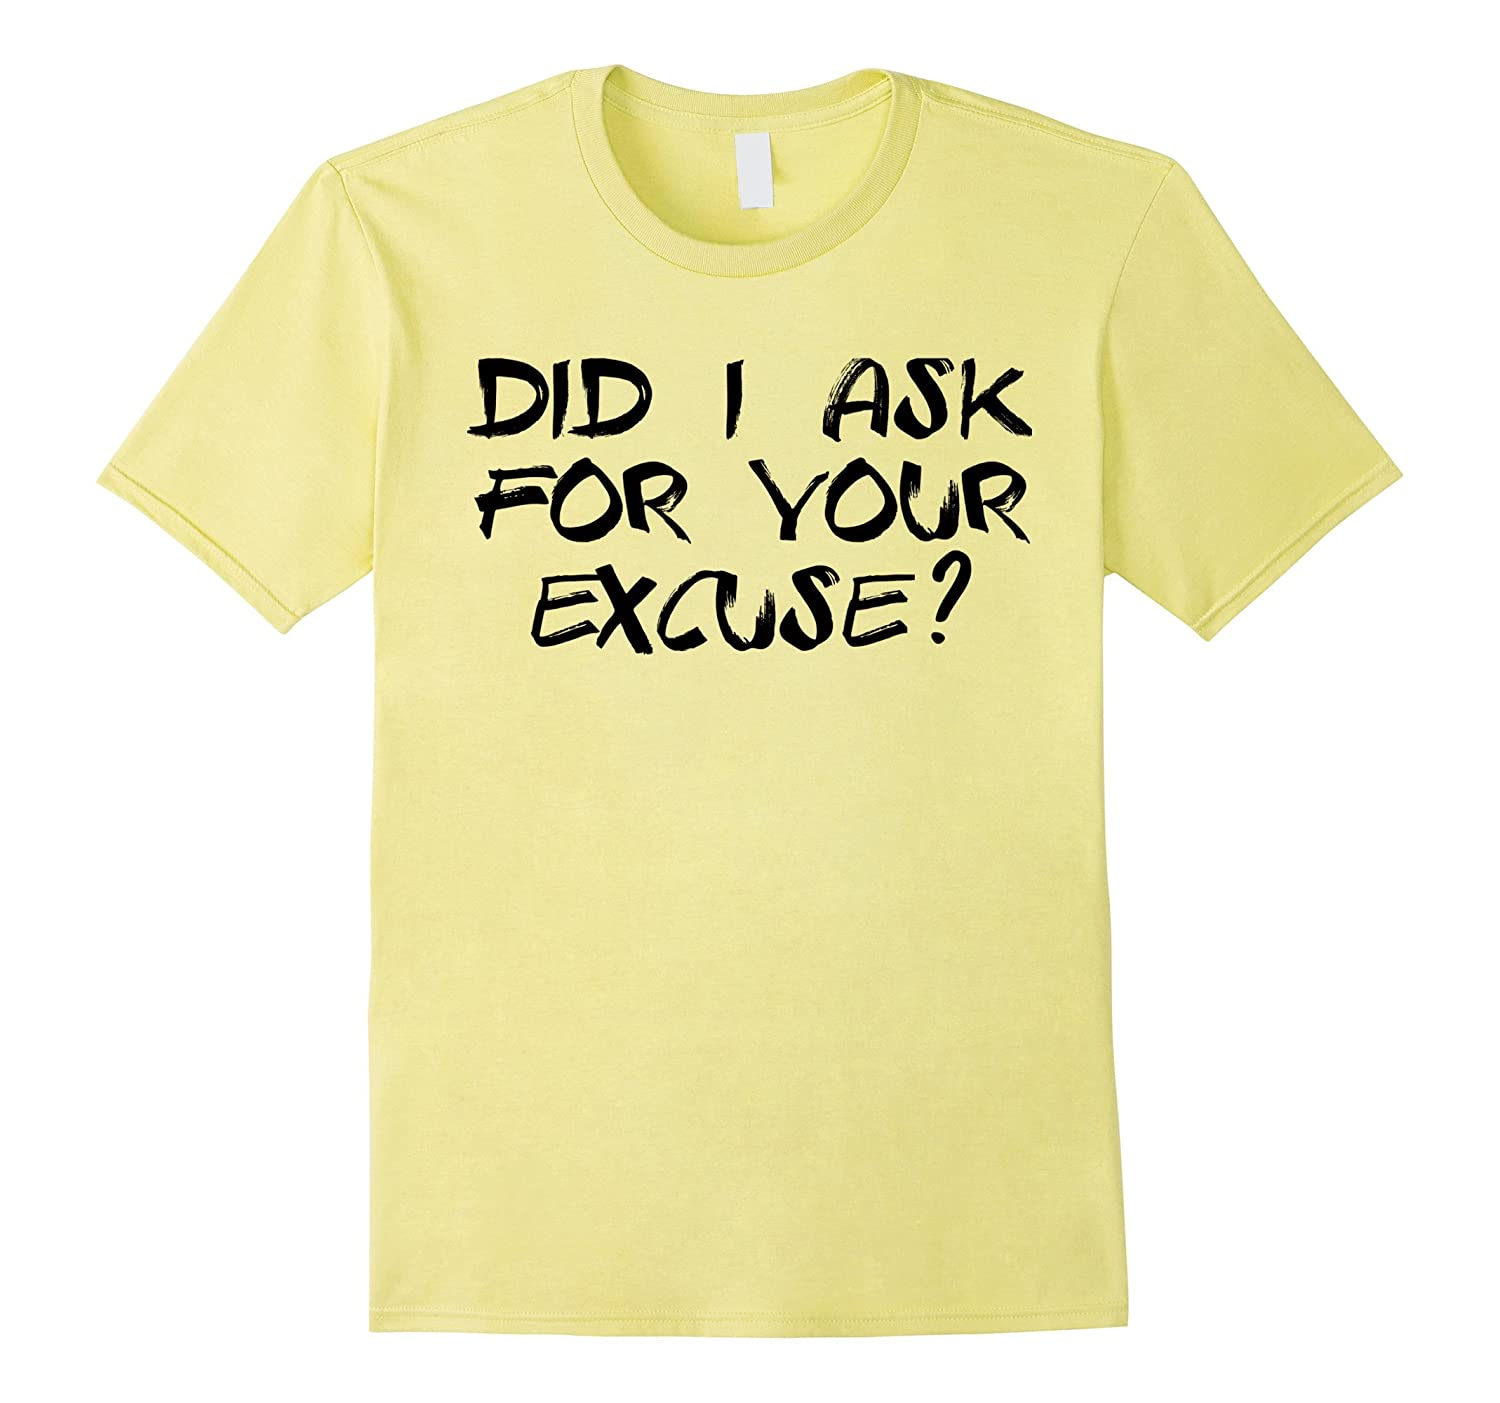 Coach quote DID I ASK YOU FOR YOUR EXCUSE tshirt (gift tee)